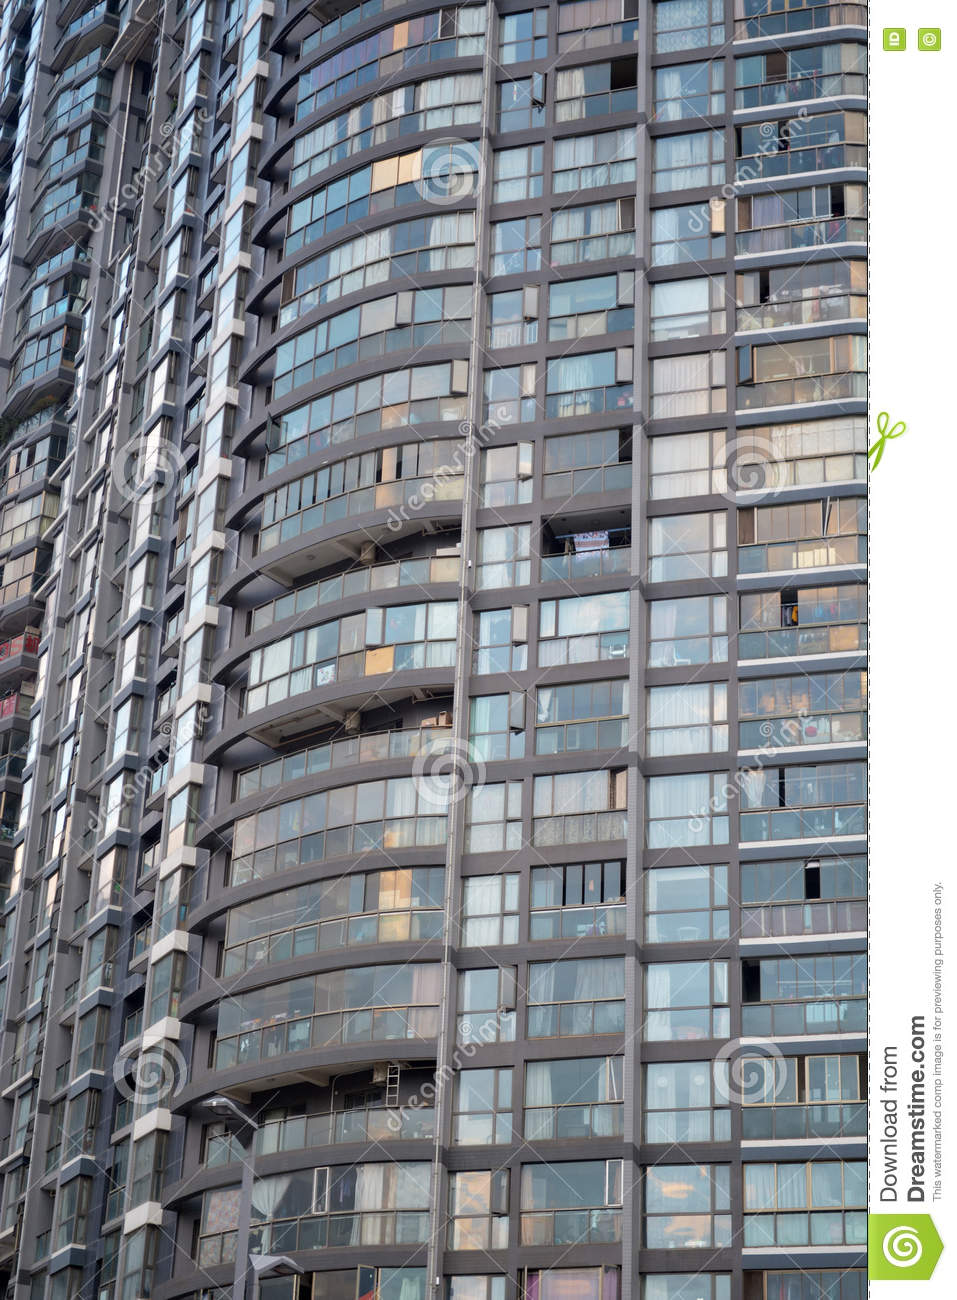 Charmant Facade Of Tall Building Full Of Apartments In City